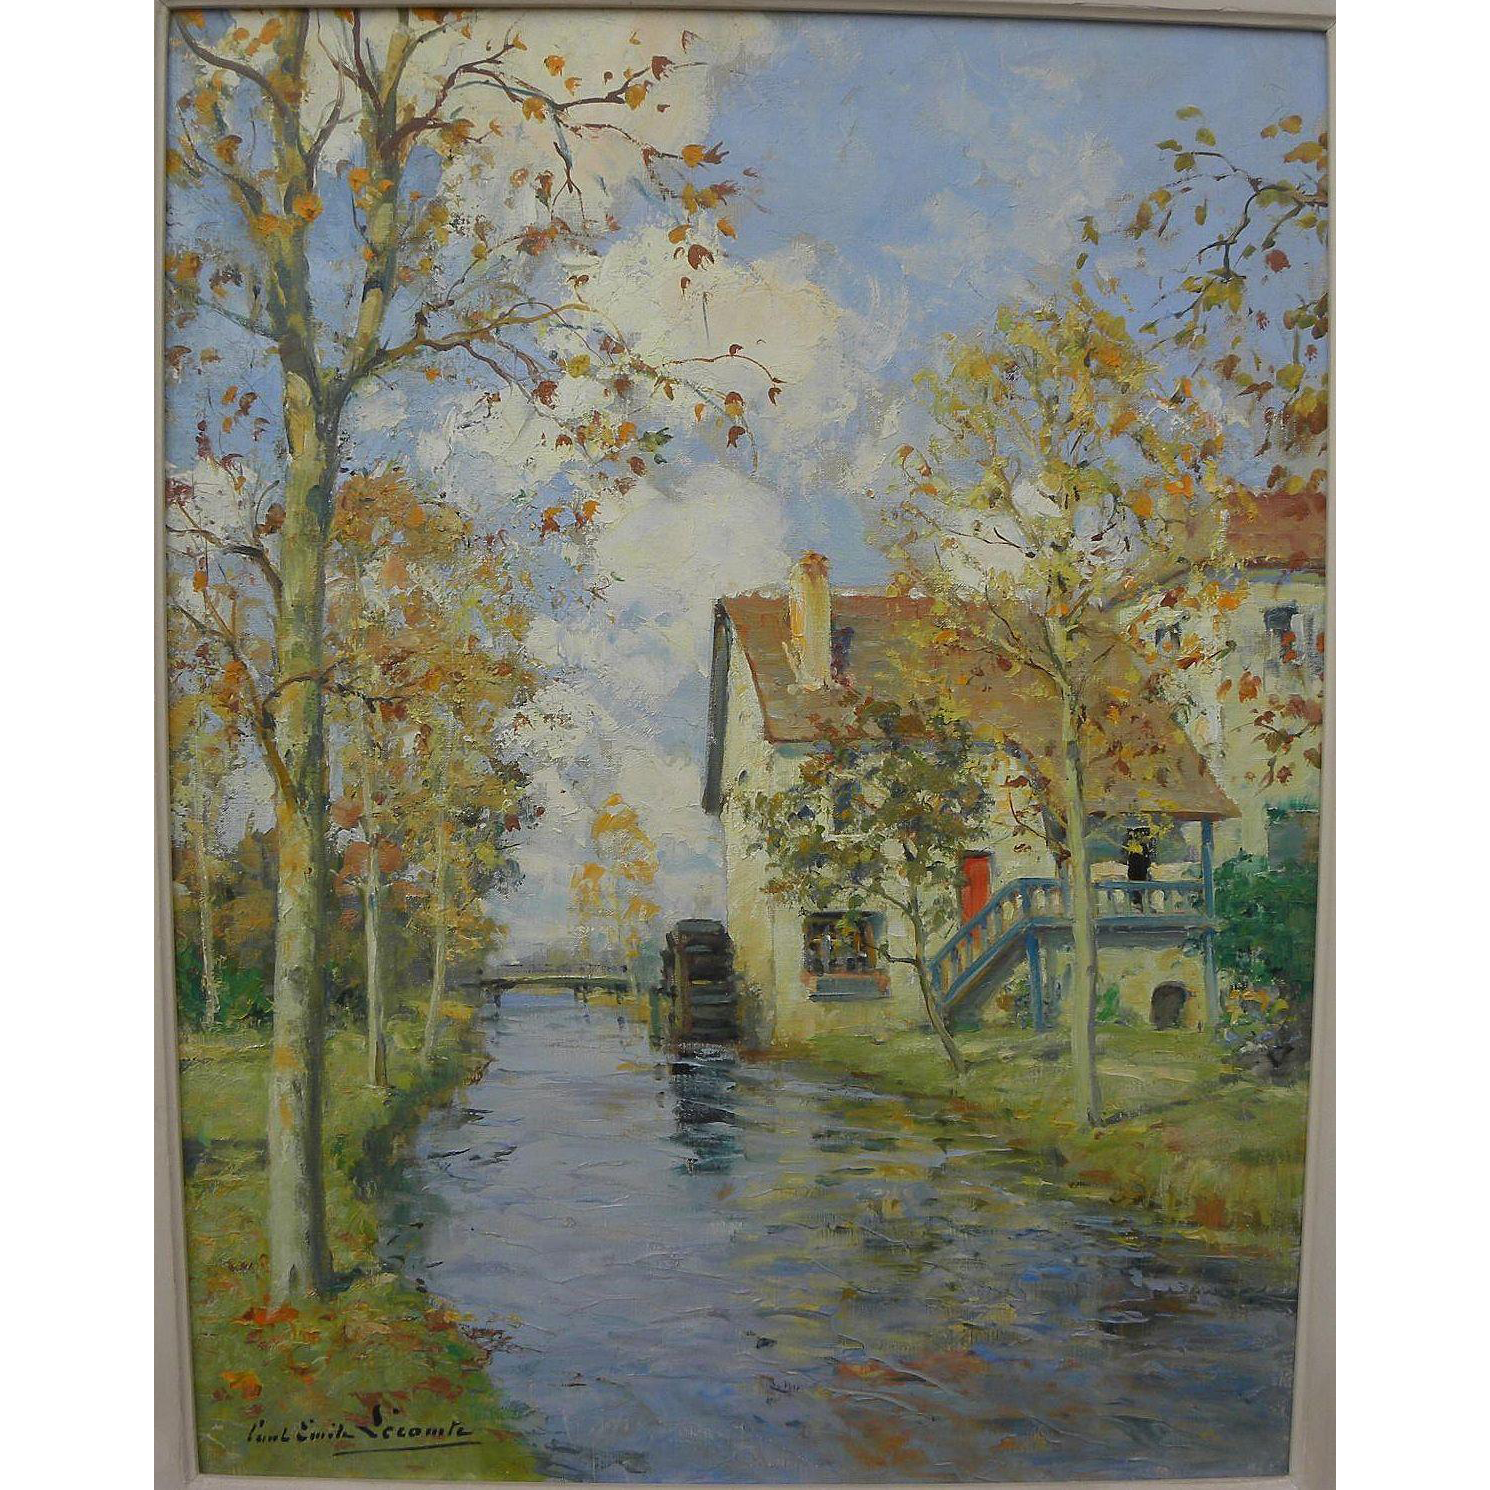 PAUL EMILE LECOMTE (1877-1950) fine impressionist painting of French country scene